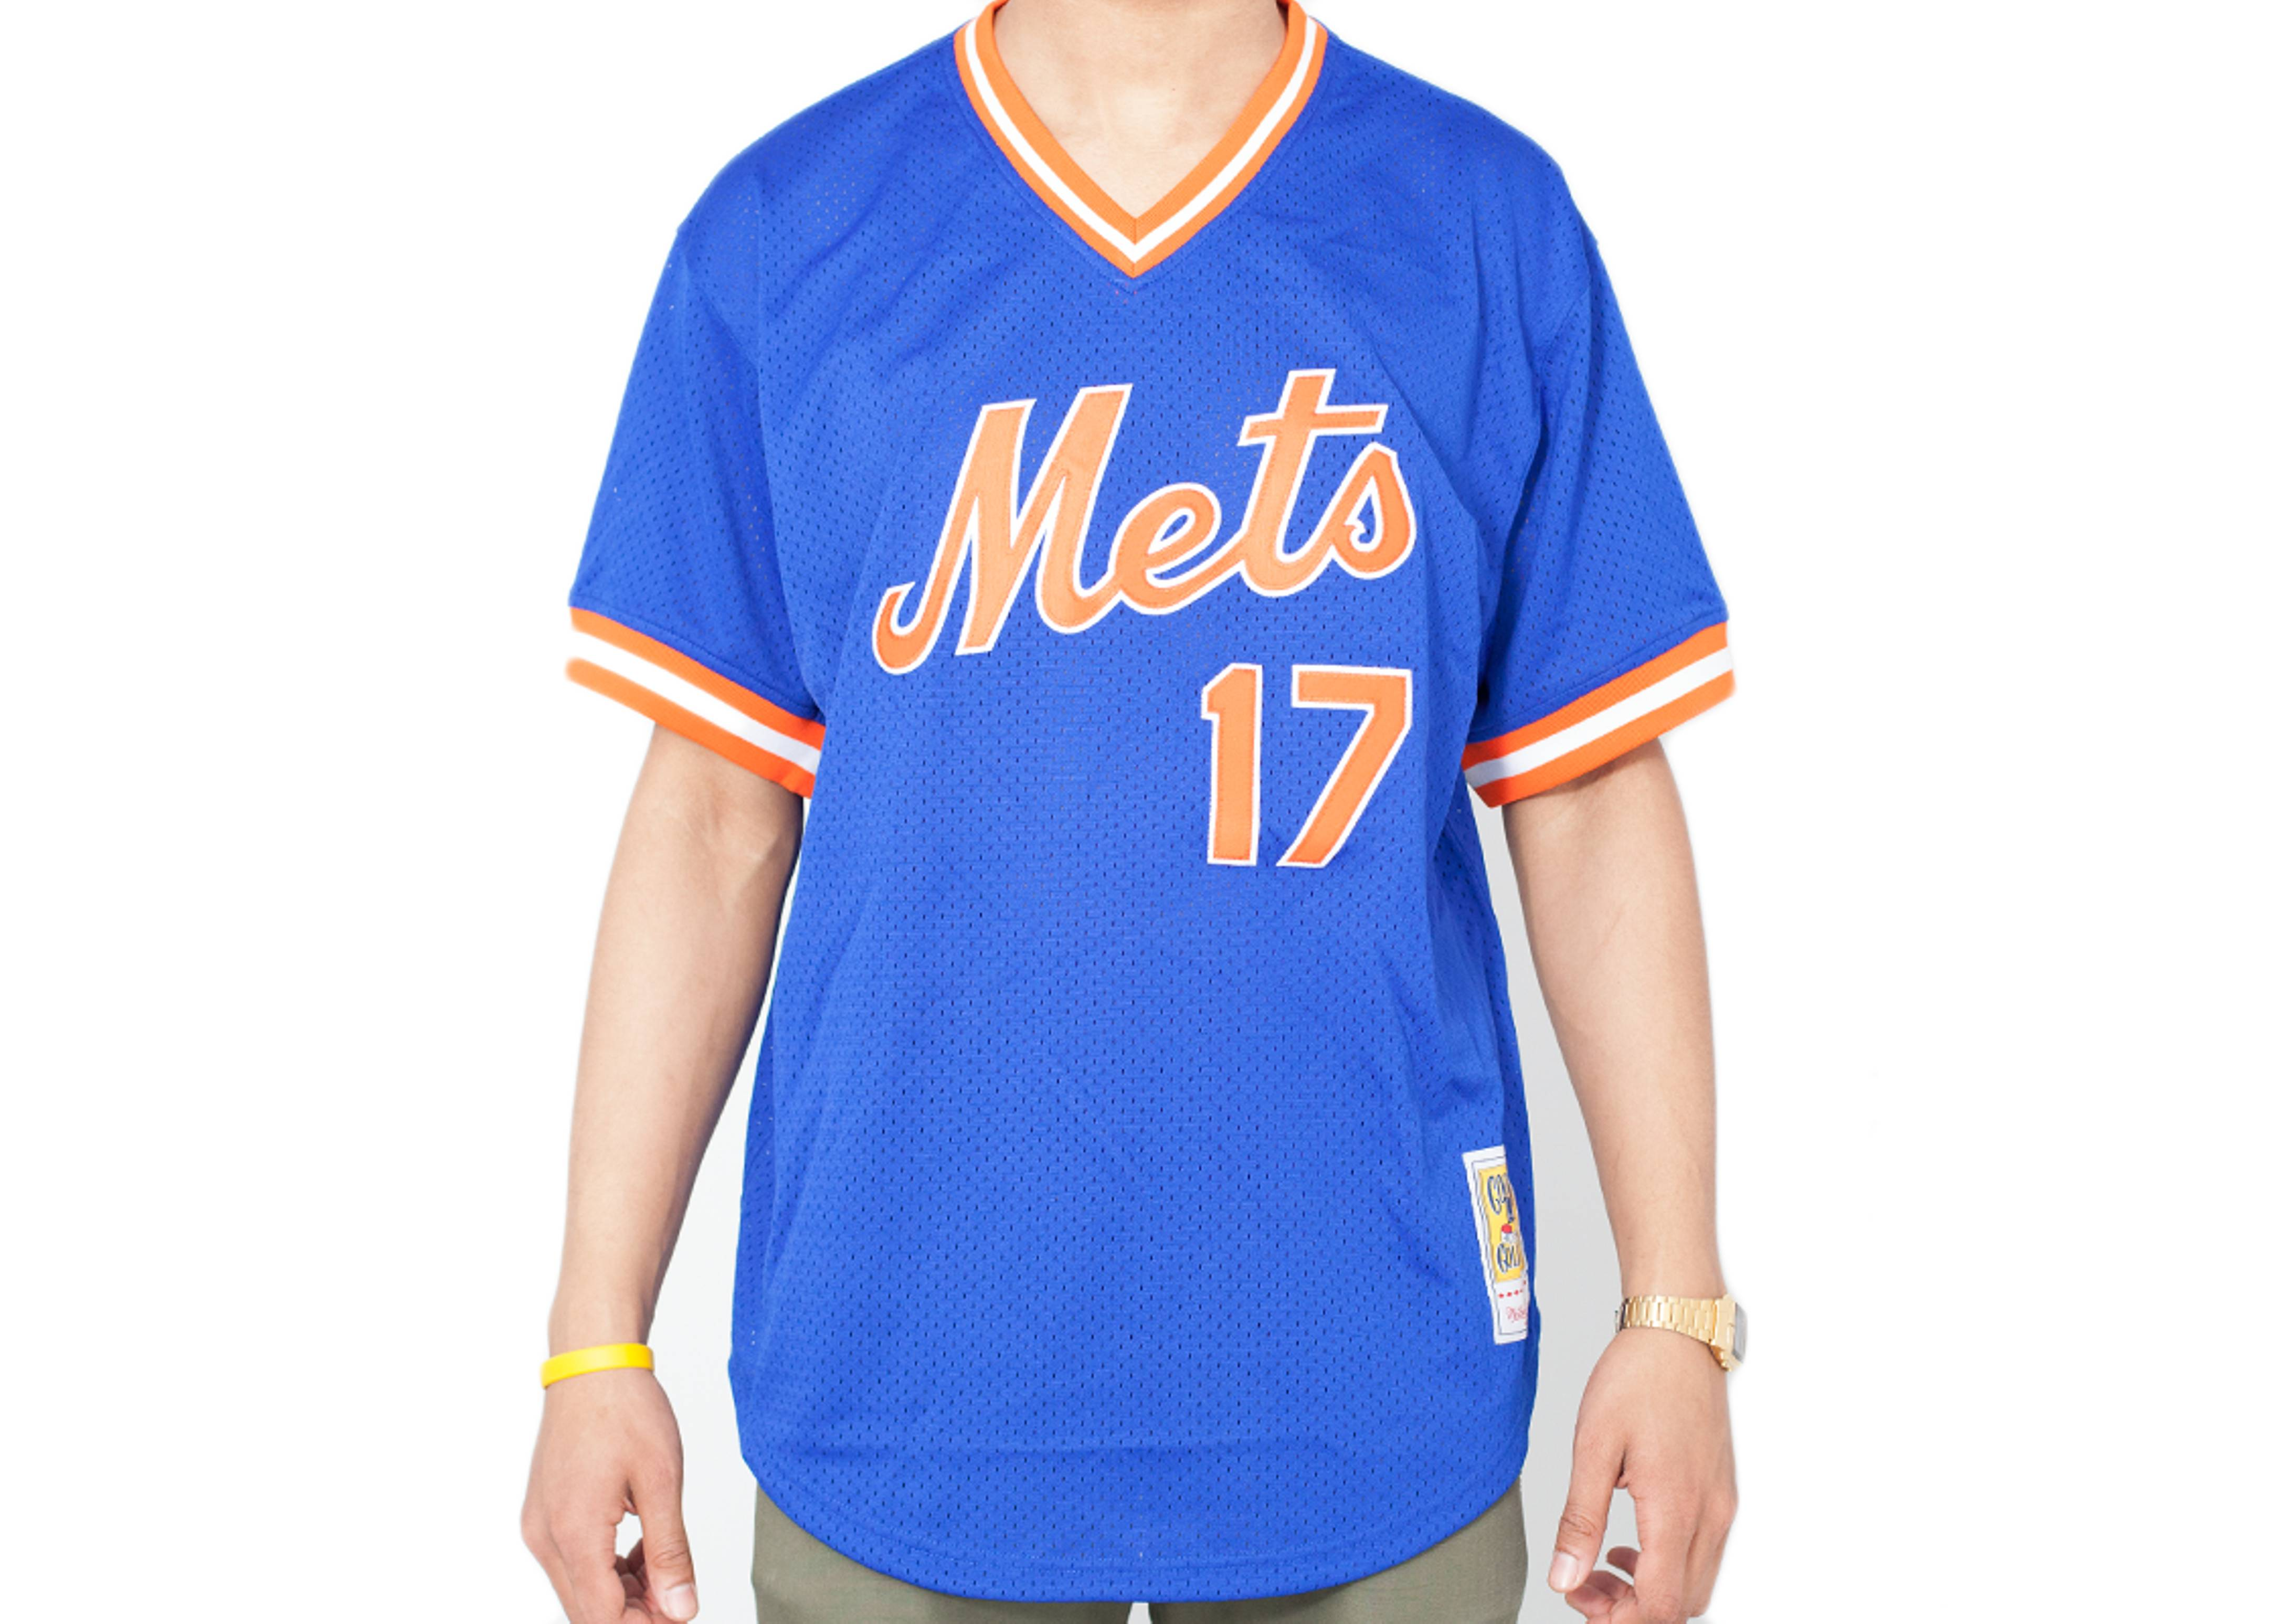 factory price 283fb aadb5 New York Mets Authentic Mesh Bp Jersey